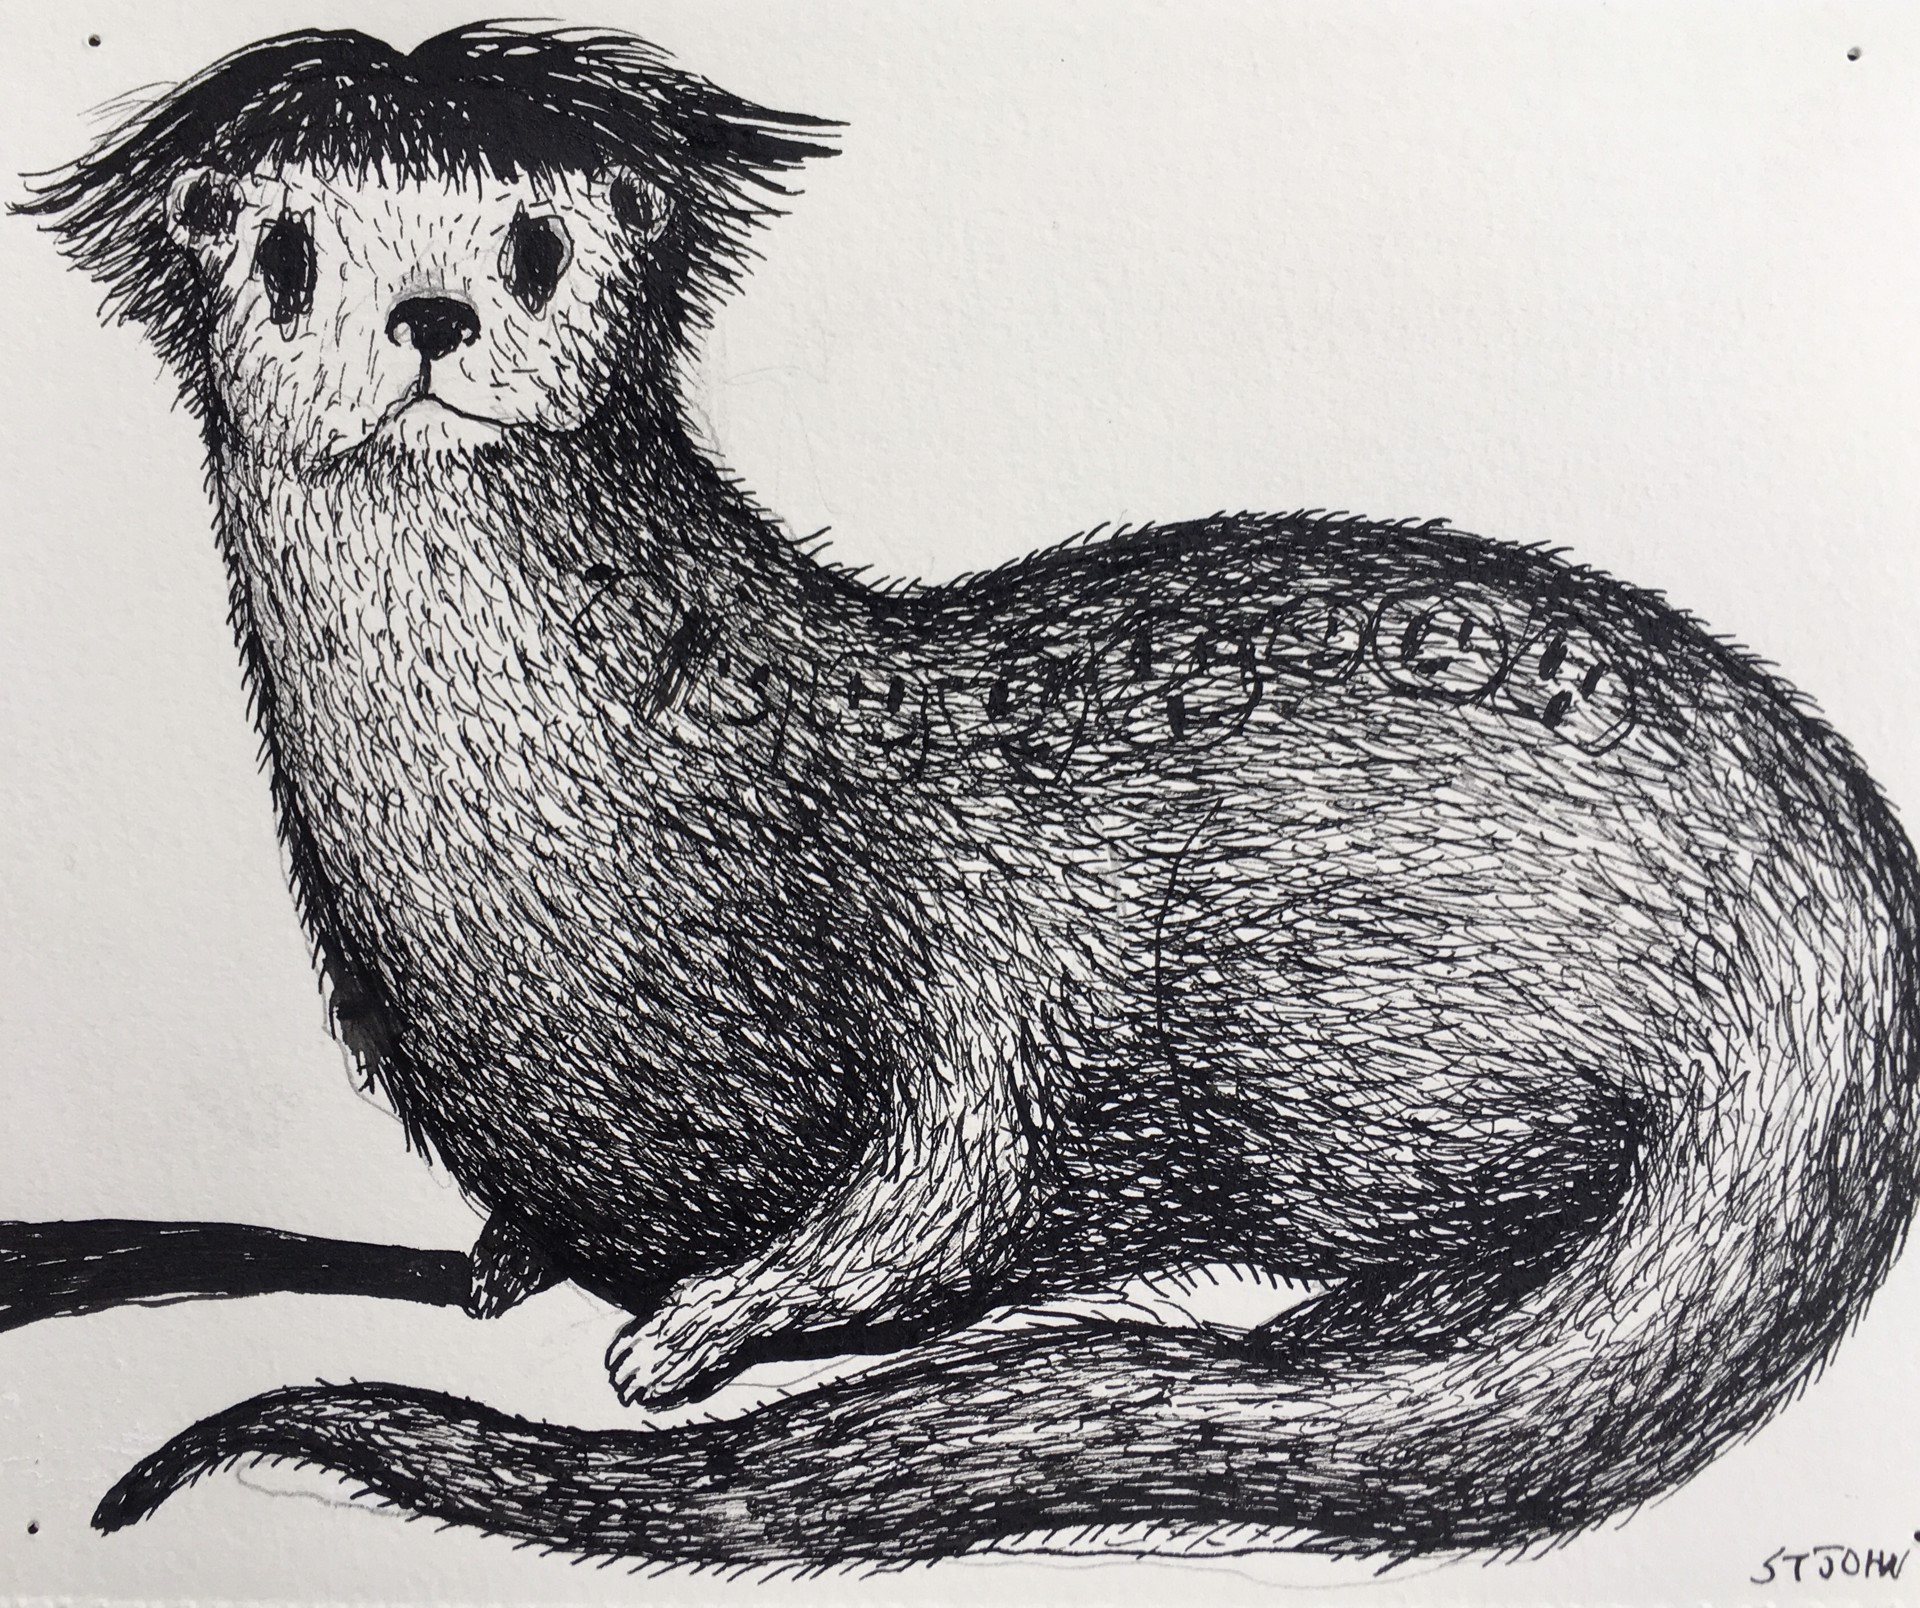 Otter with Good Hair by Christopher St. John